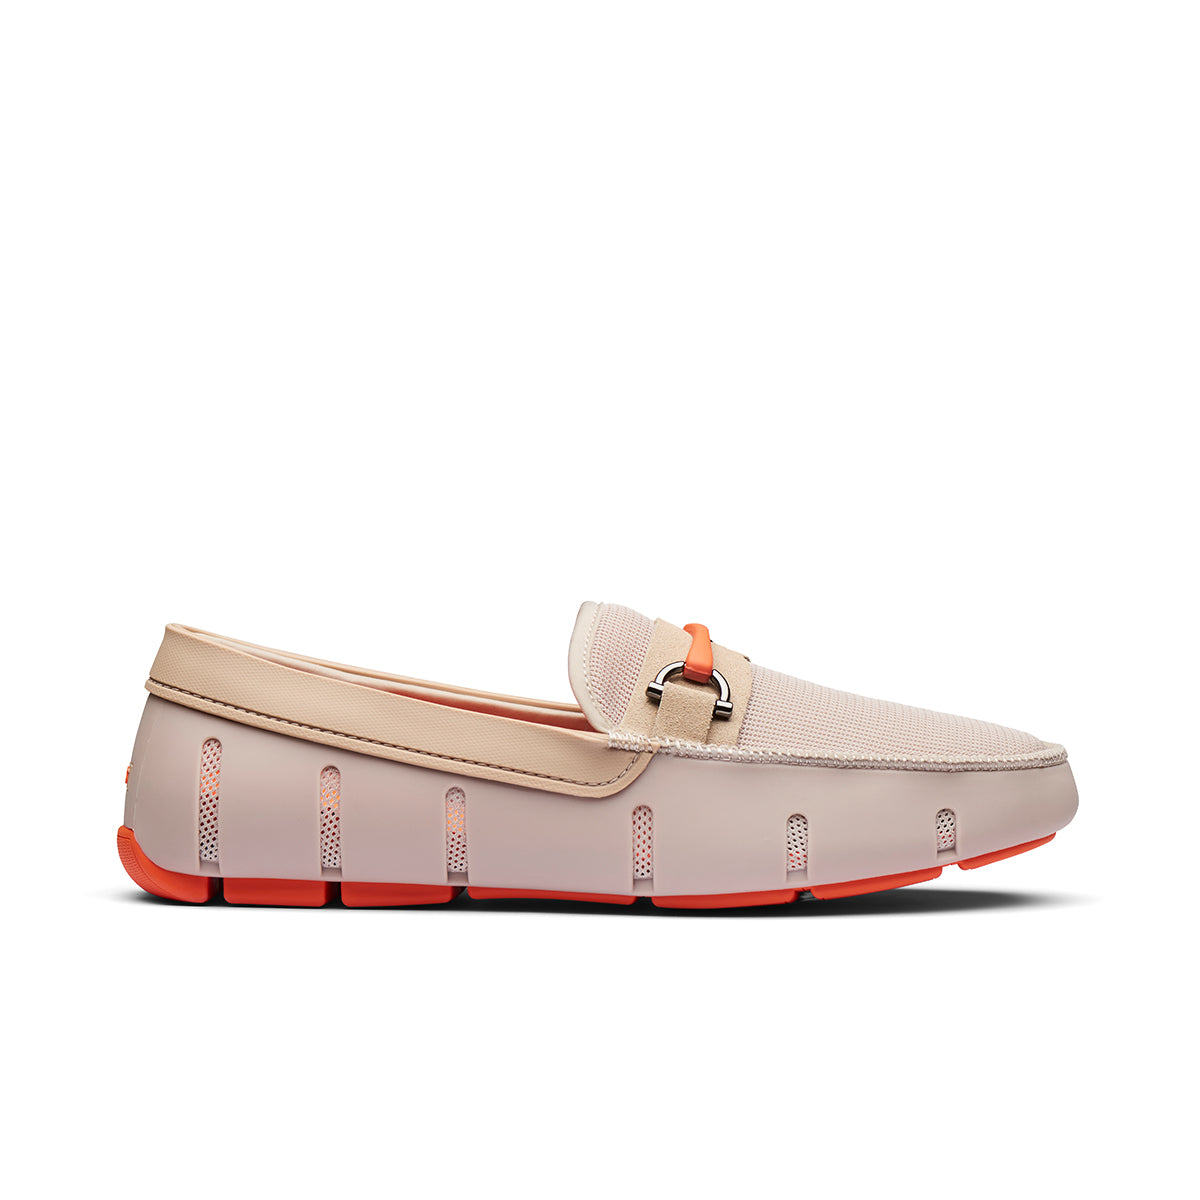 Sporty Bit Loafer - background::white,variant::Khaki